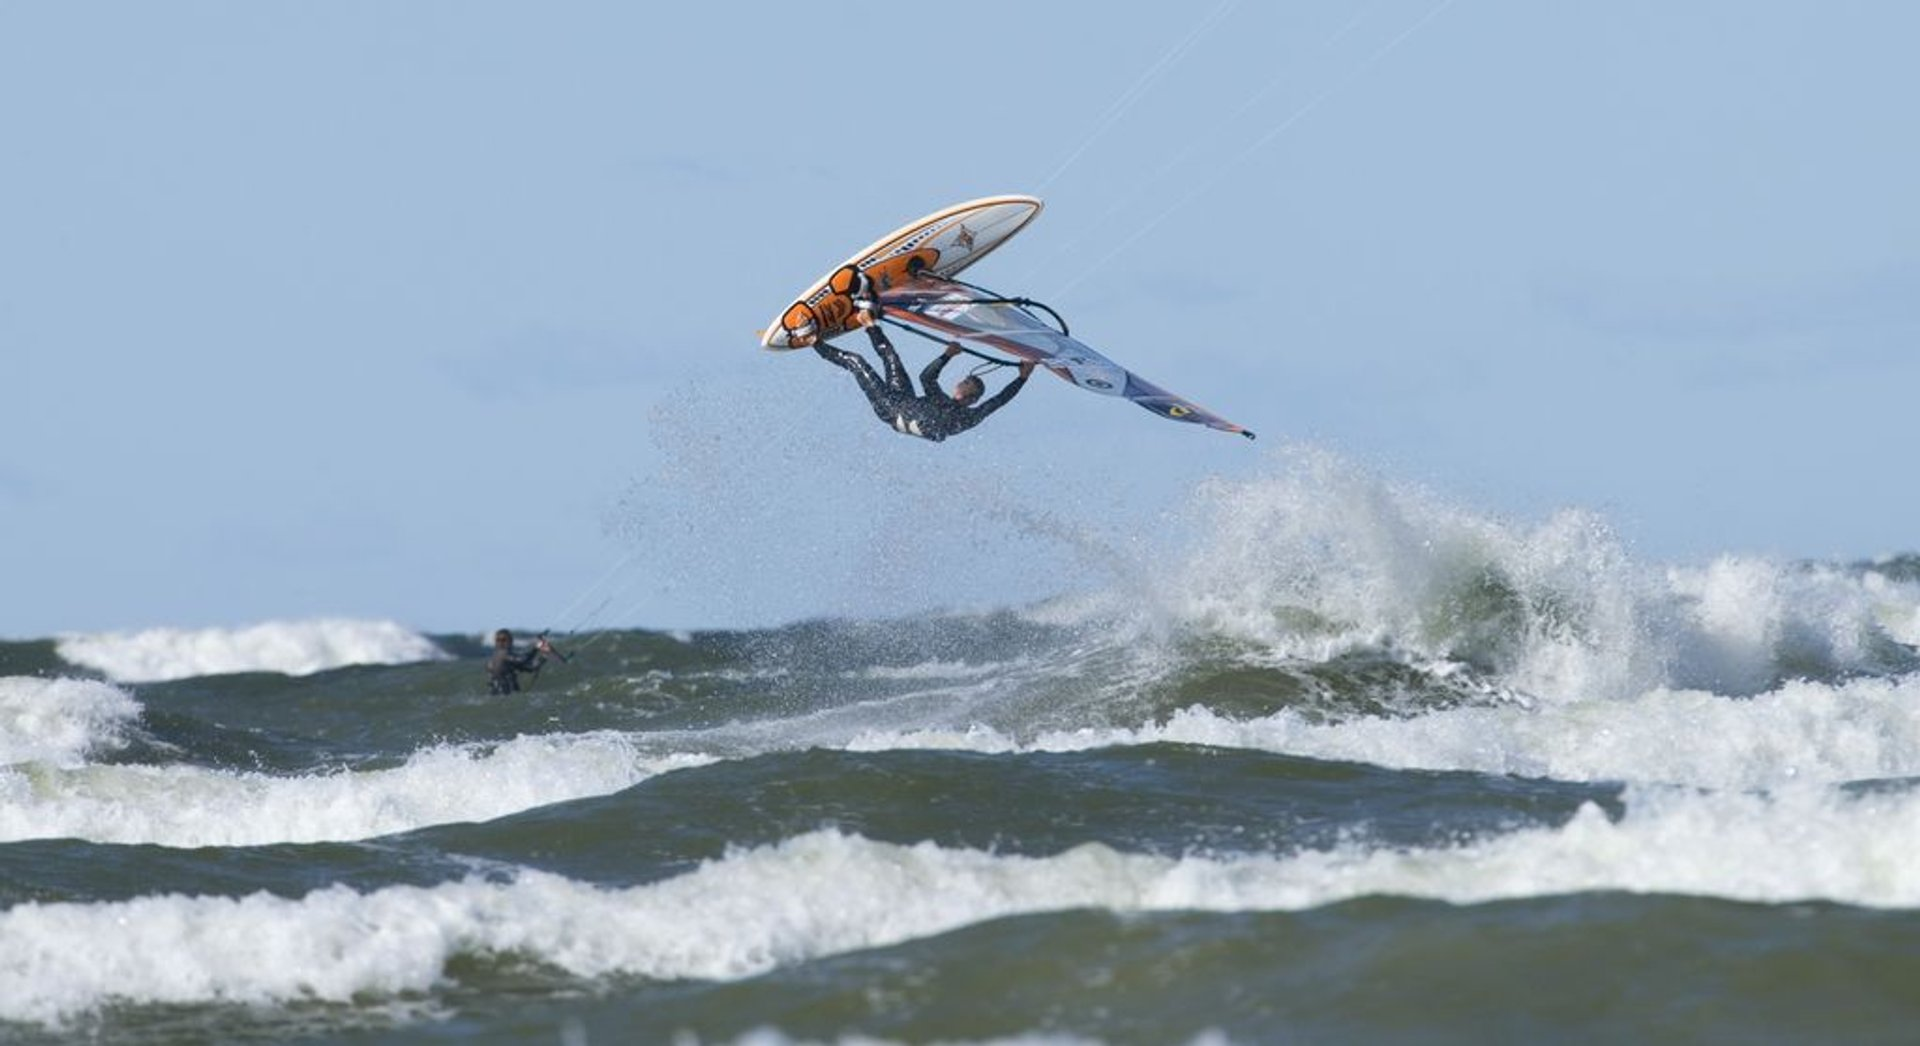 Windsurfing and Kitesurfing in Estonia 2020 - Best Time